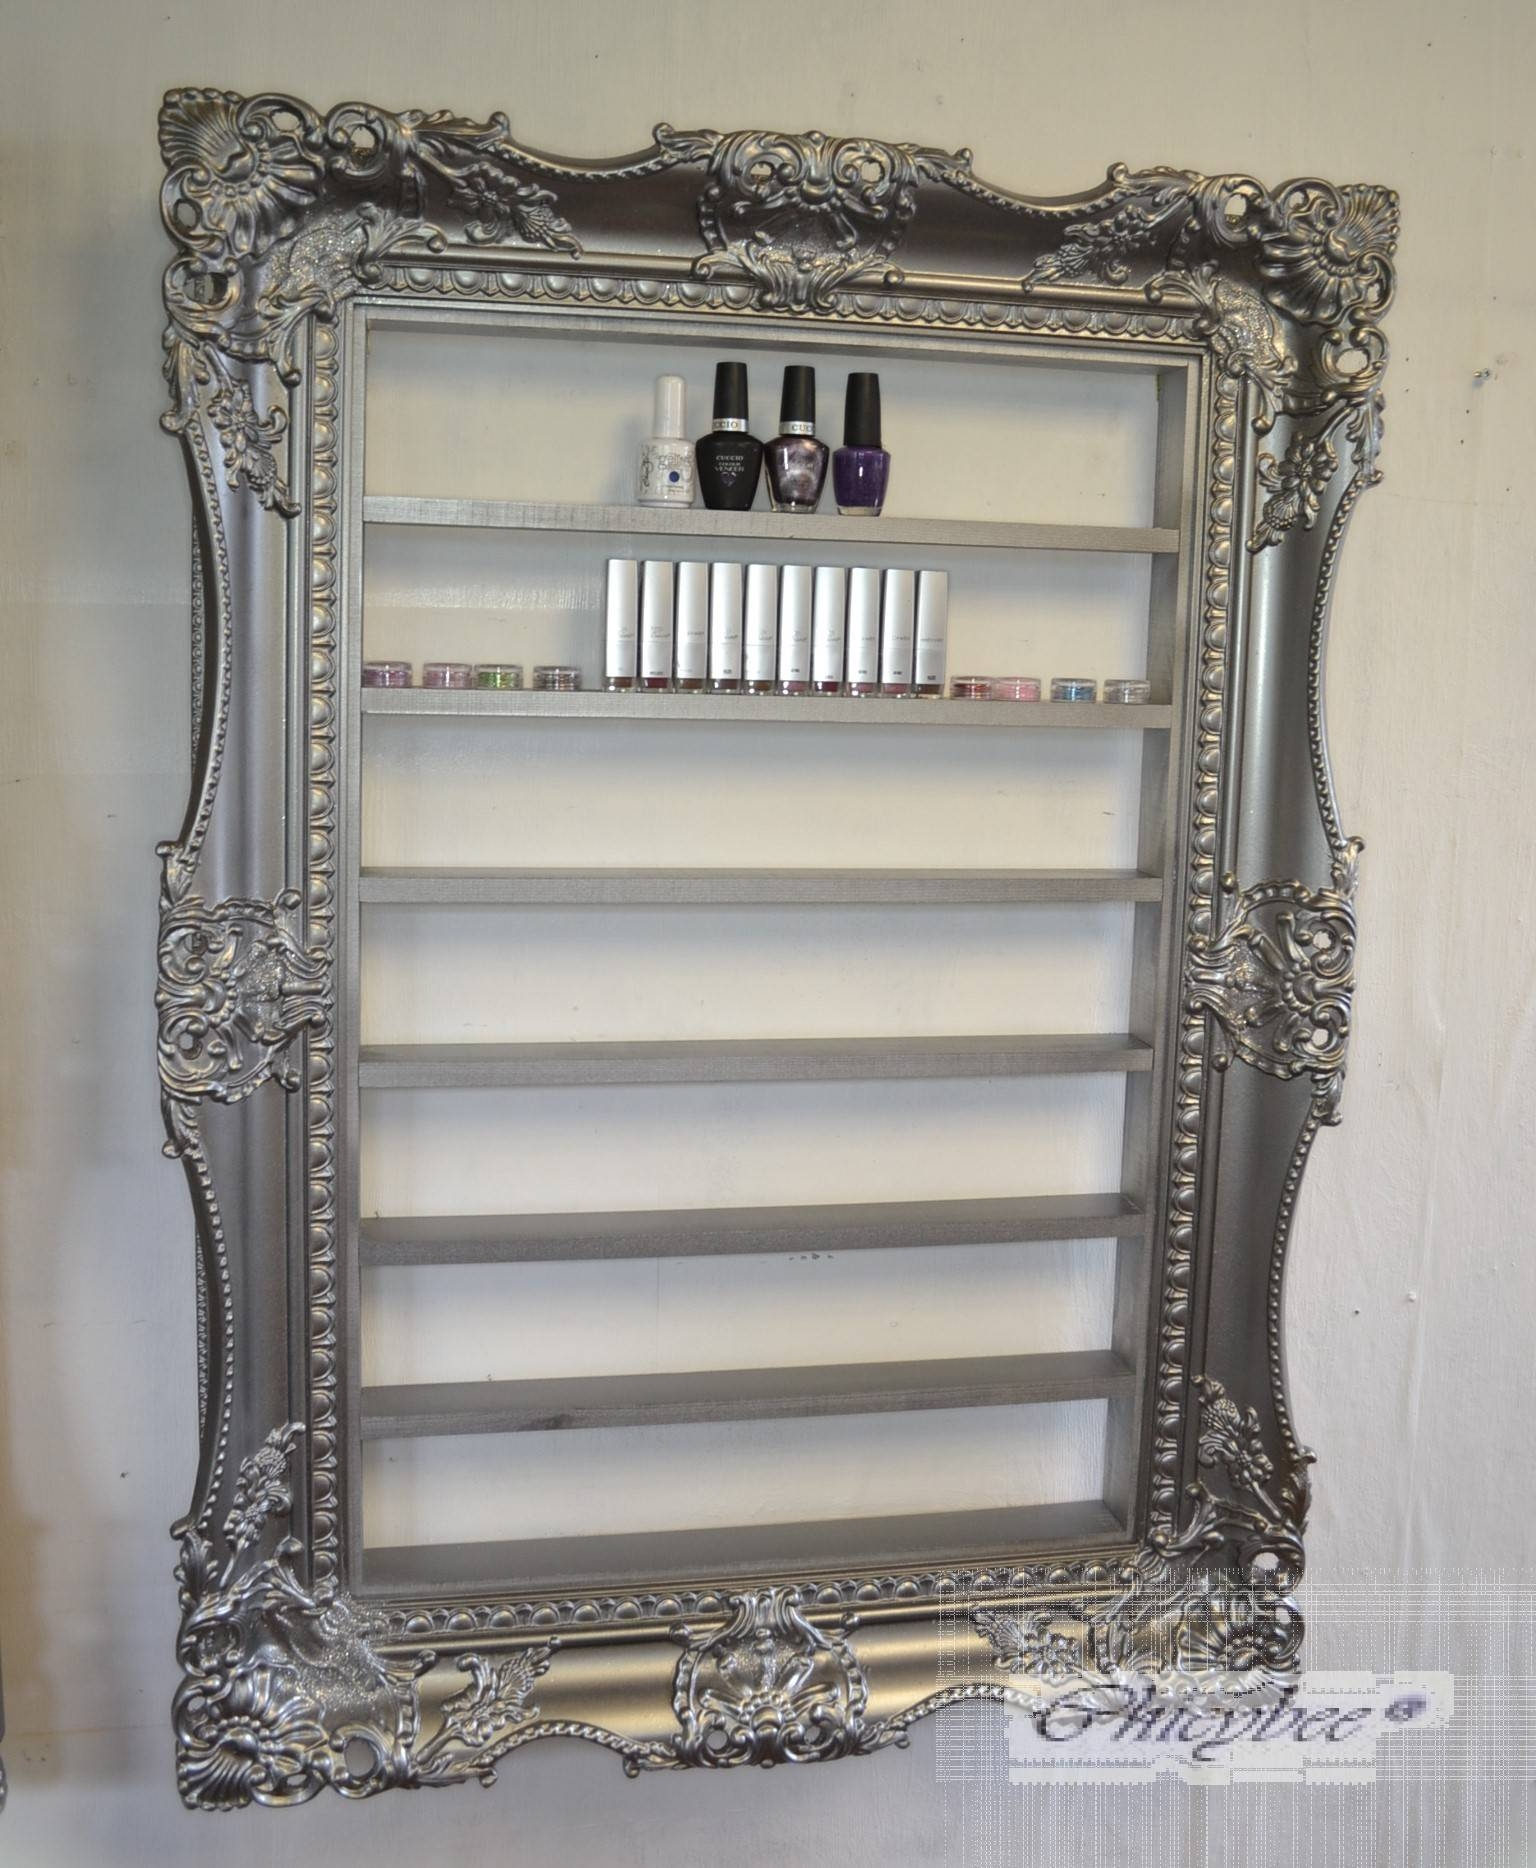 Nail Polish Rack Display Frame Very Wide And Ornate Pewter Silver Within Pewter Ornate Mirrors (View 7 of 15)